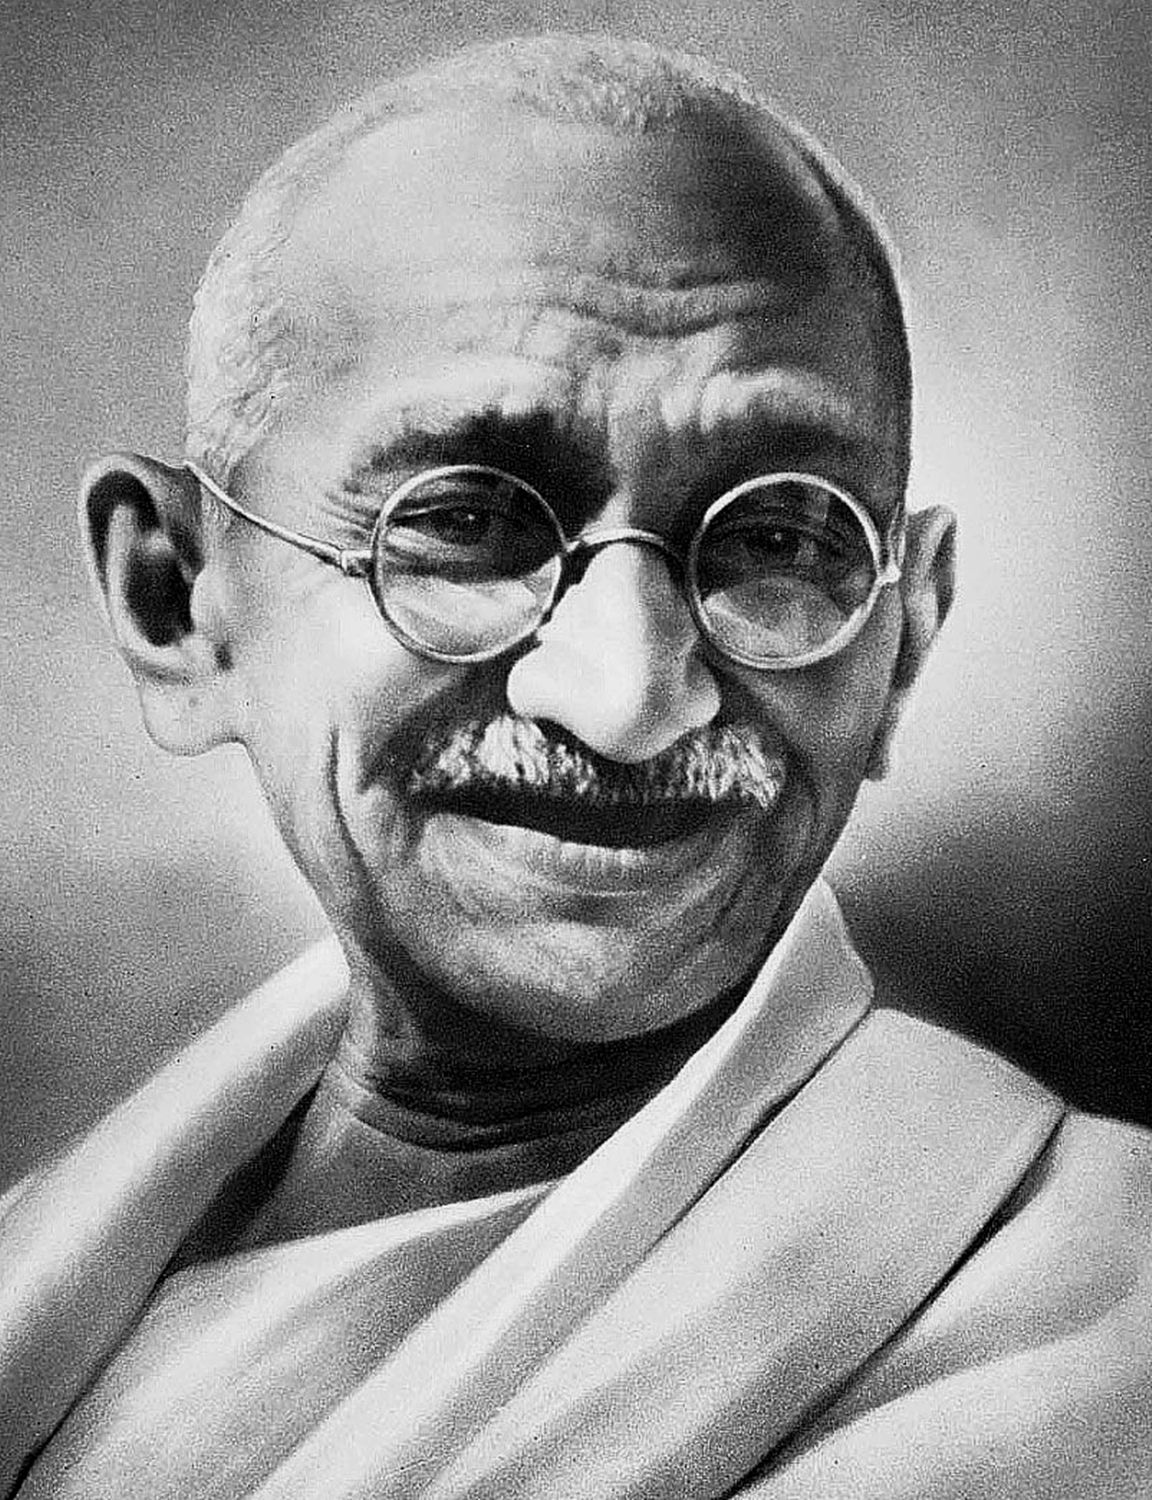 gandhi argument essay gandhi essays gandhi essays more hindi essays on mahatma gandhi gandhi essays more hindi